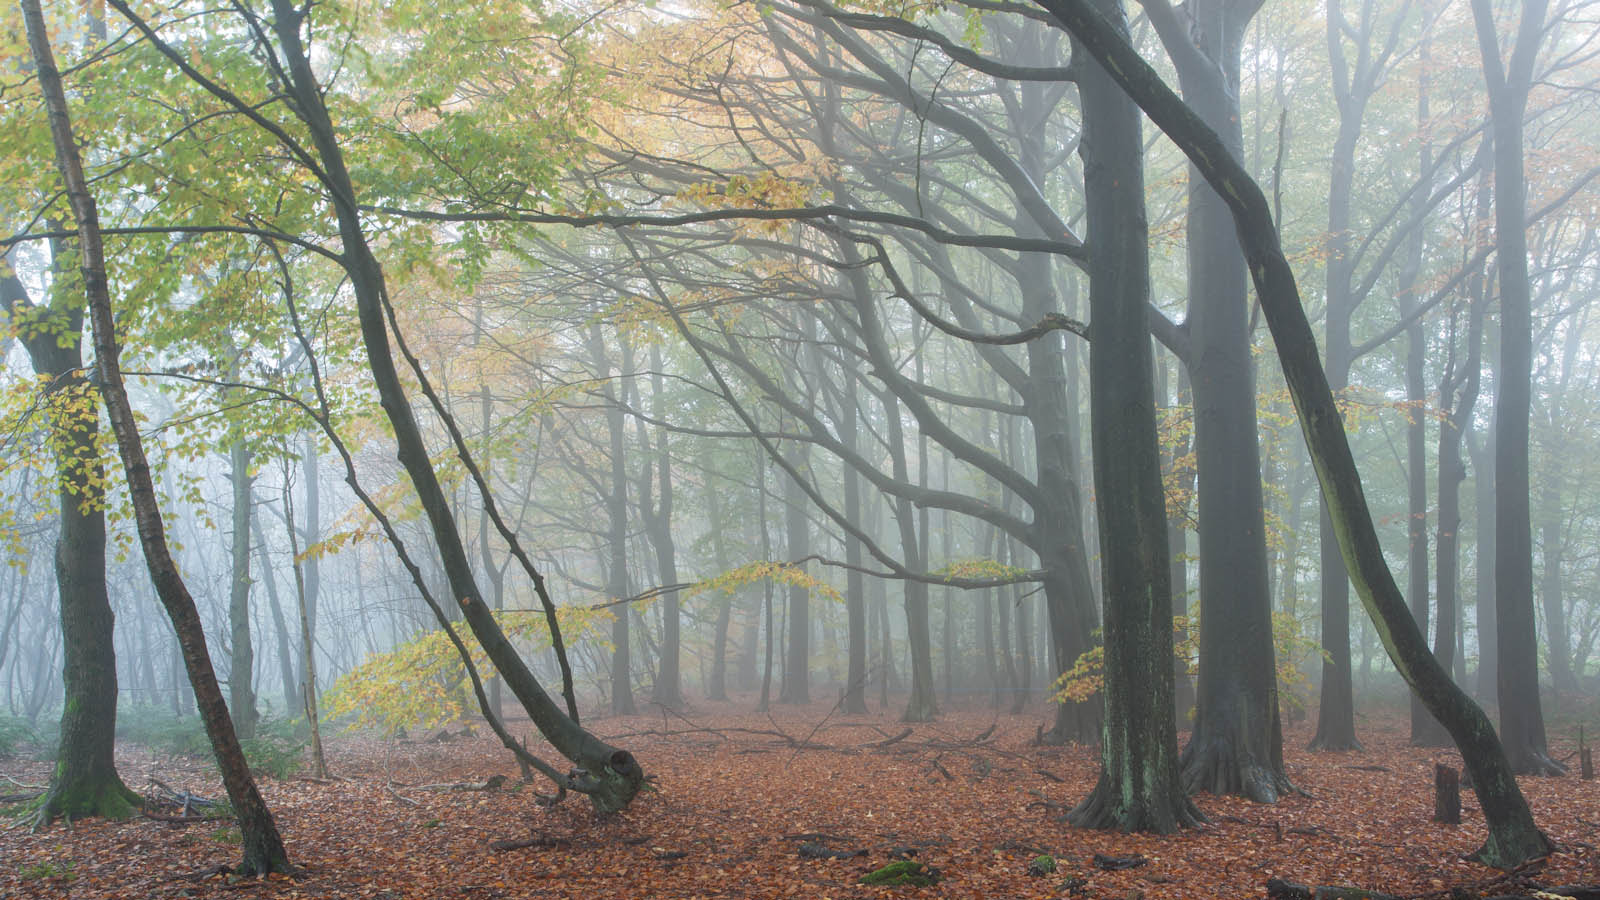 Photograph Lantlodge Wood by James Mills on 500px